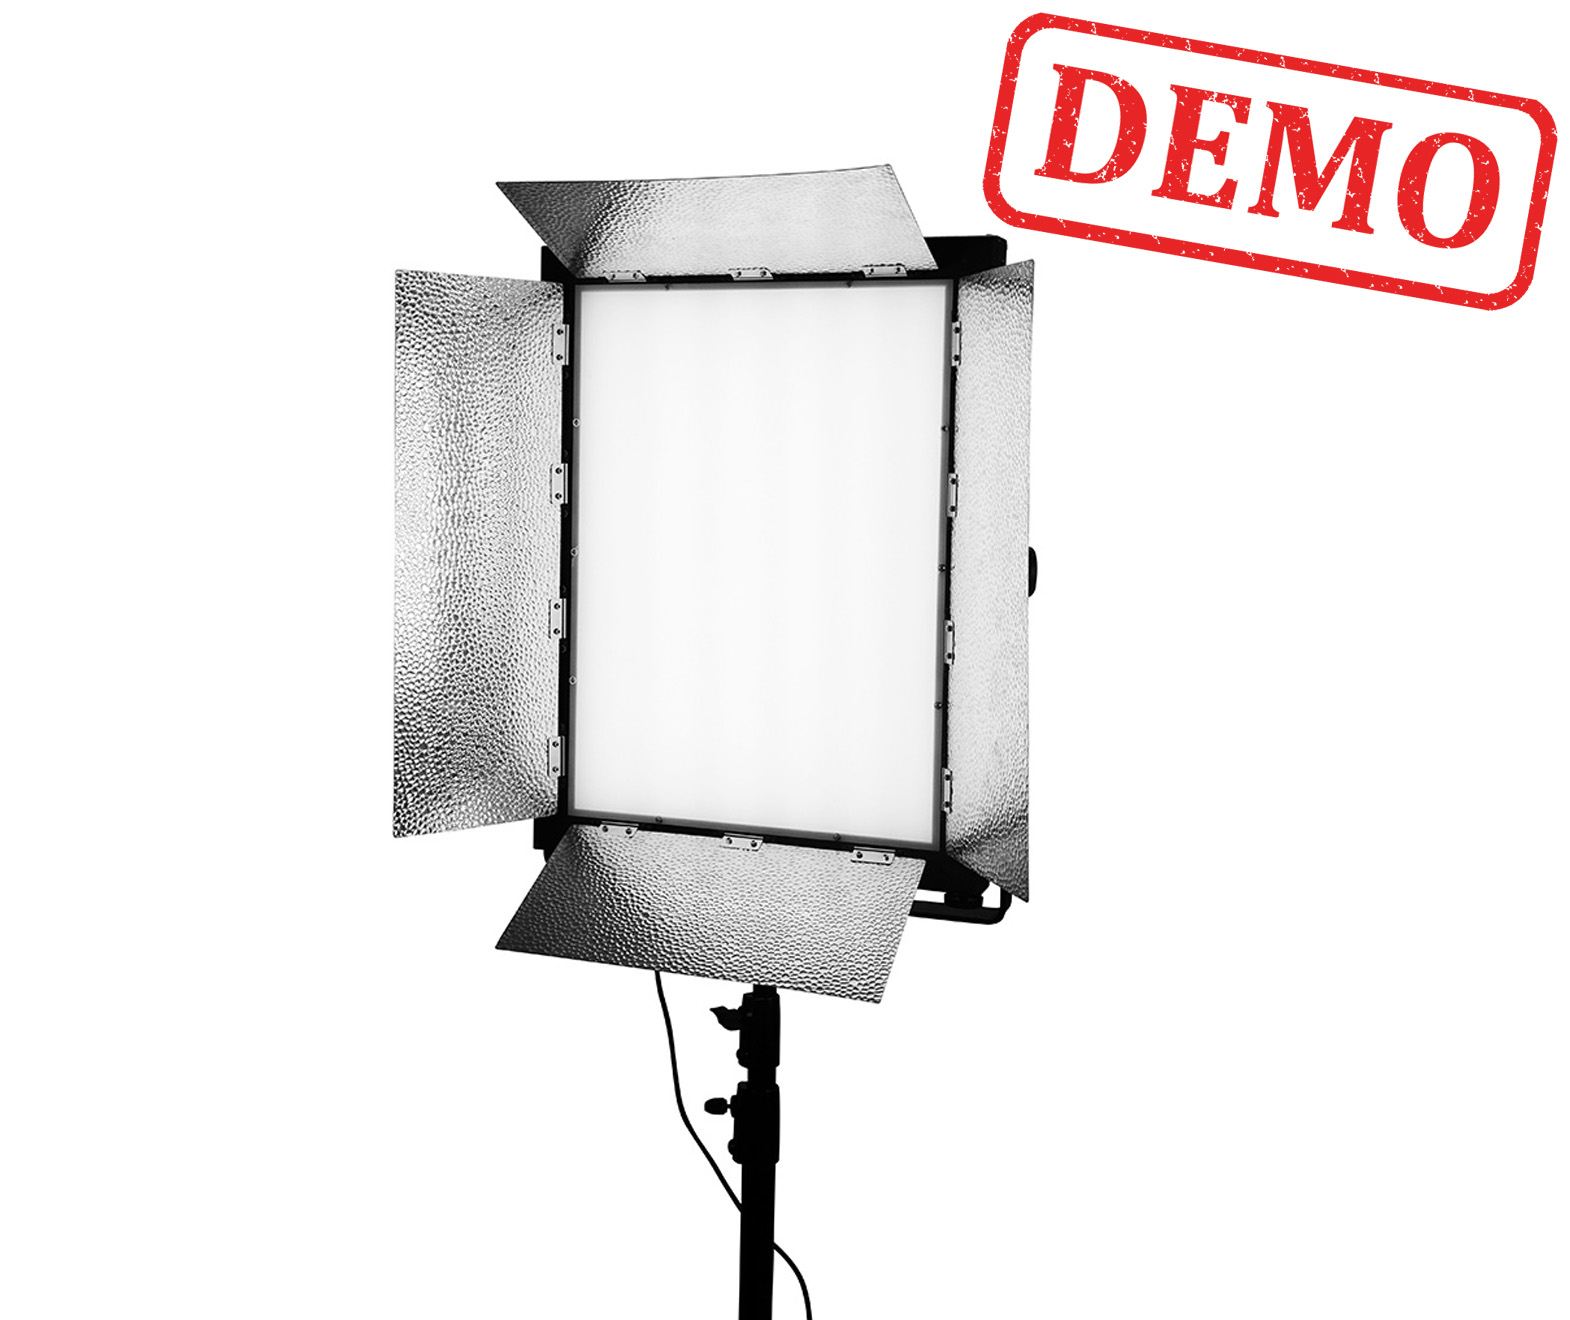 DEMO - Nanguang CN-T270 DMX Led Studio Light